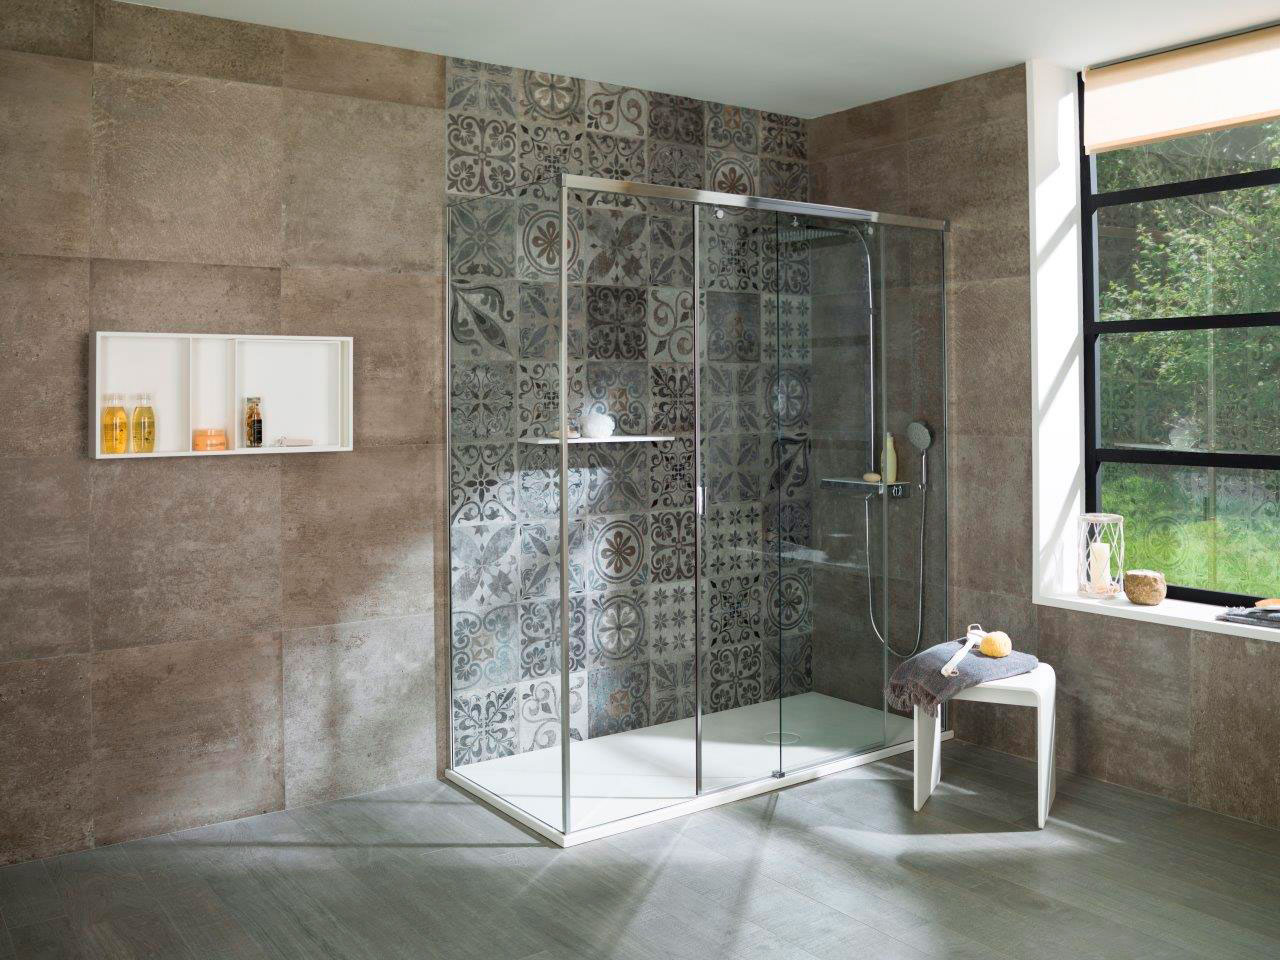 Cersaie 2015: Sinuosity and nature in the new S+Line Systempool shower screen